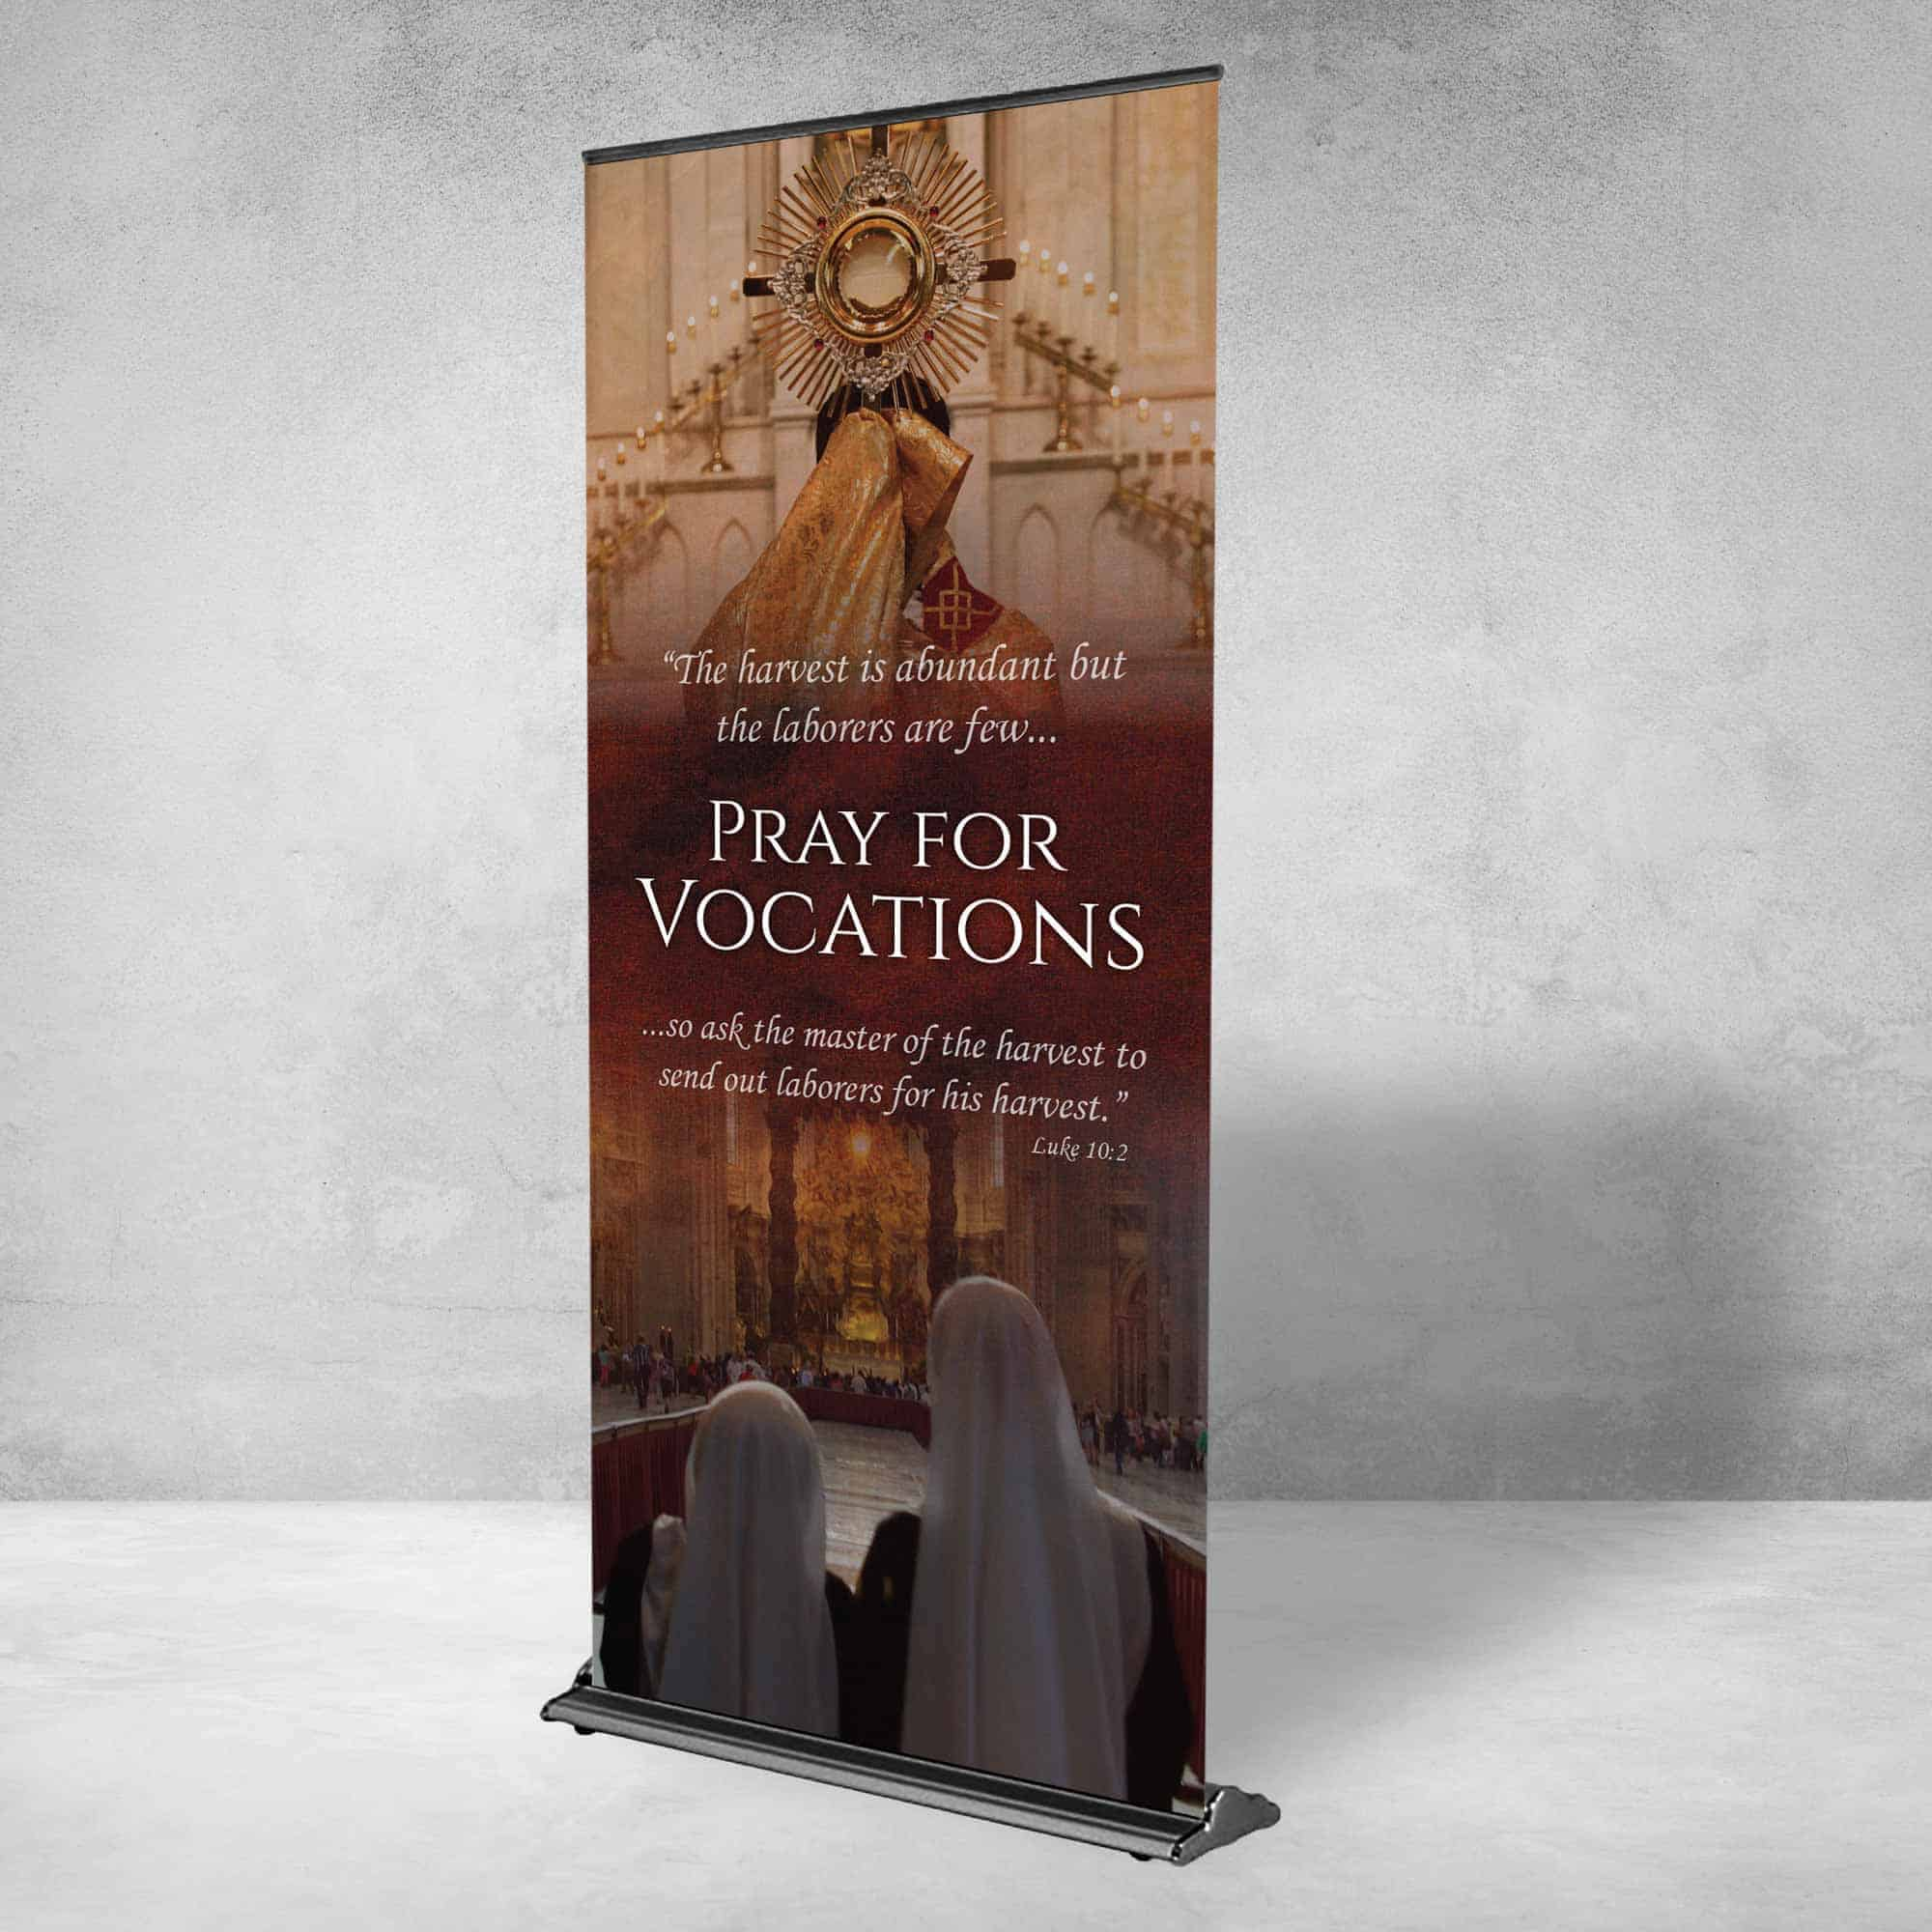 BAN-HRV_product_image - Vianney Vocations